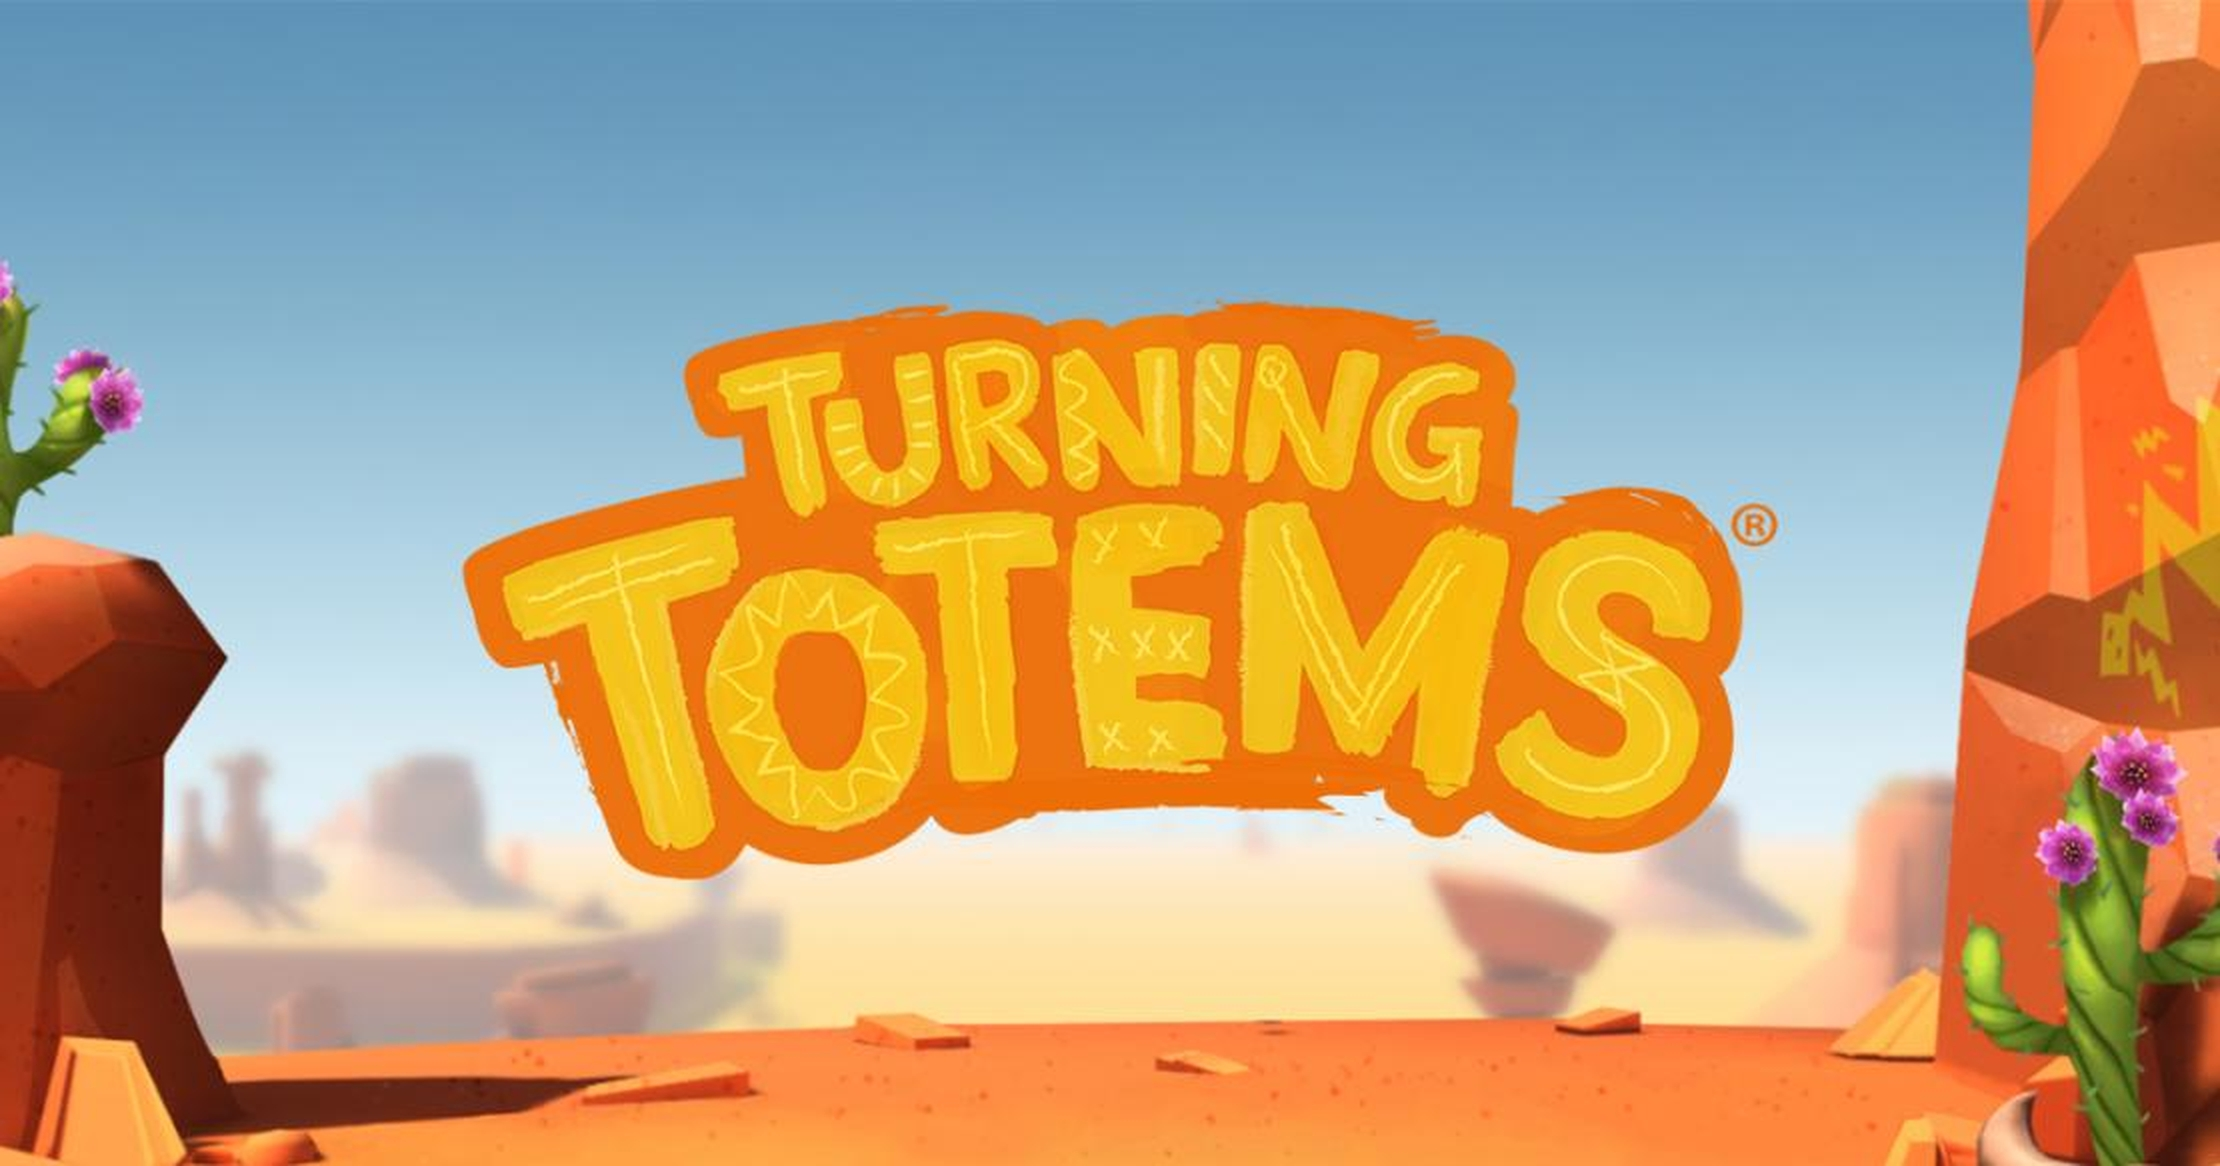 The Turning Totems Online Slot Demo Game by Thunderkick